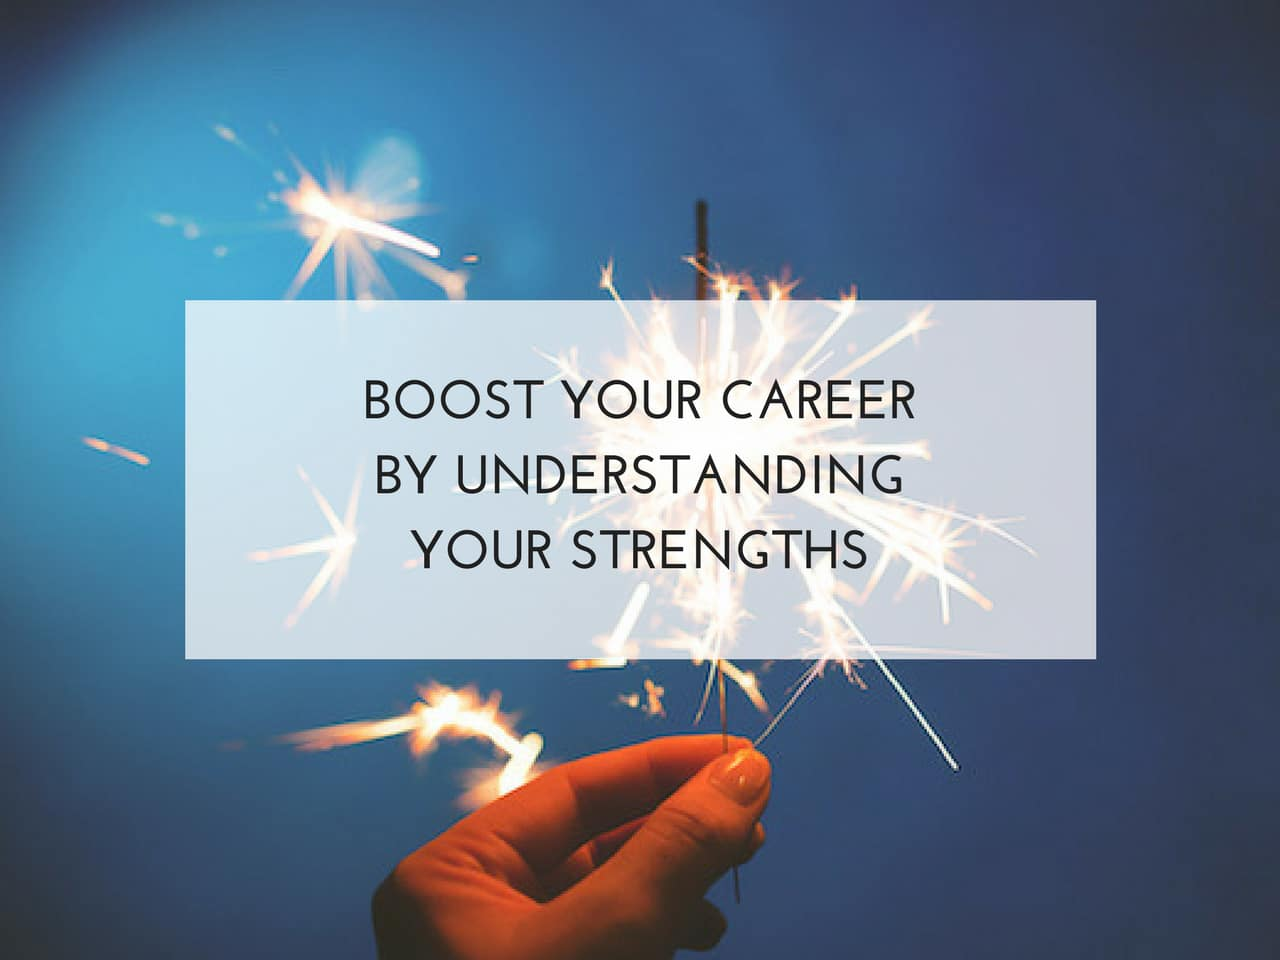 Boost your career by understanding your strengths. Bright Sky HR